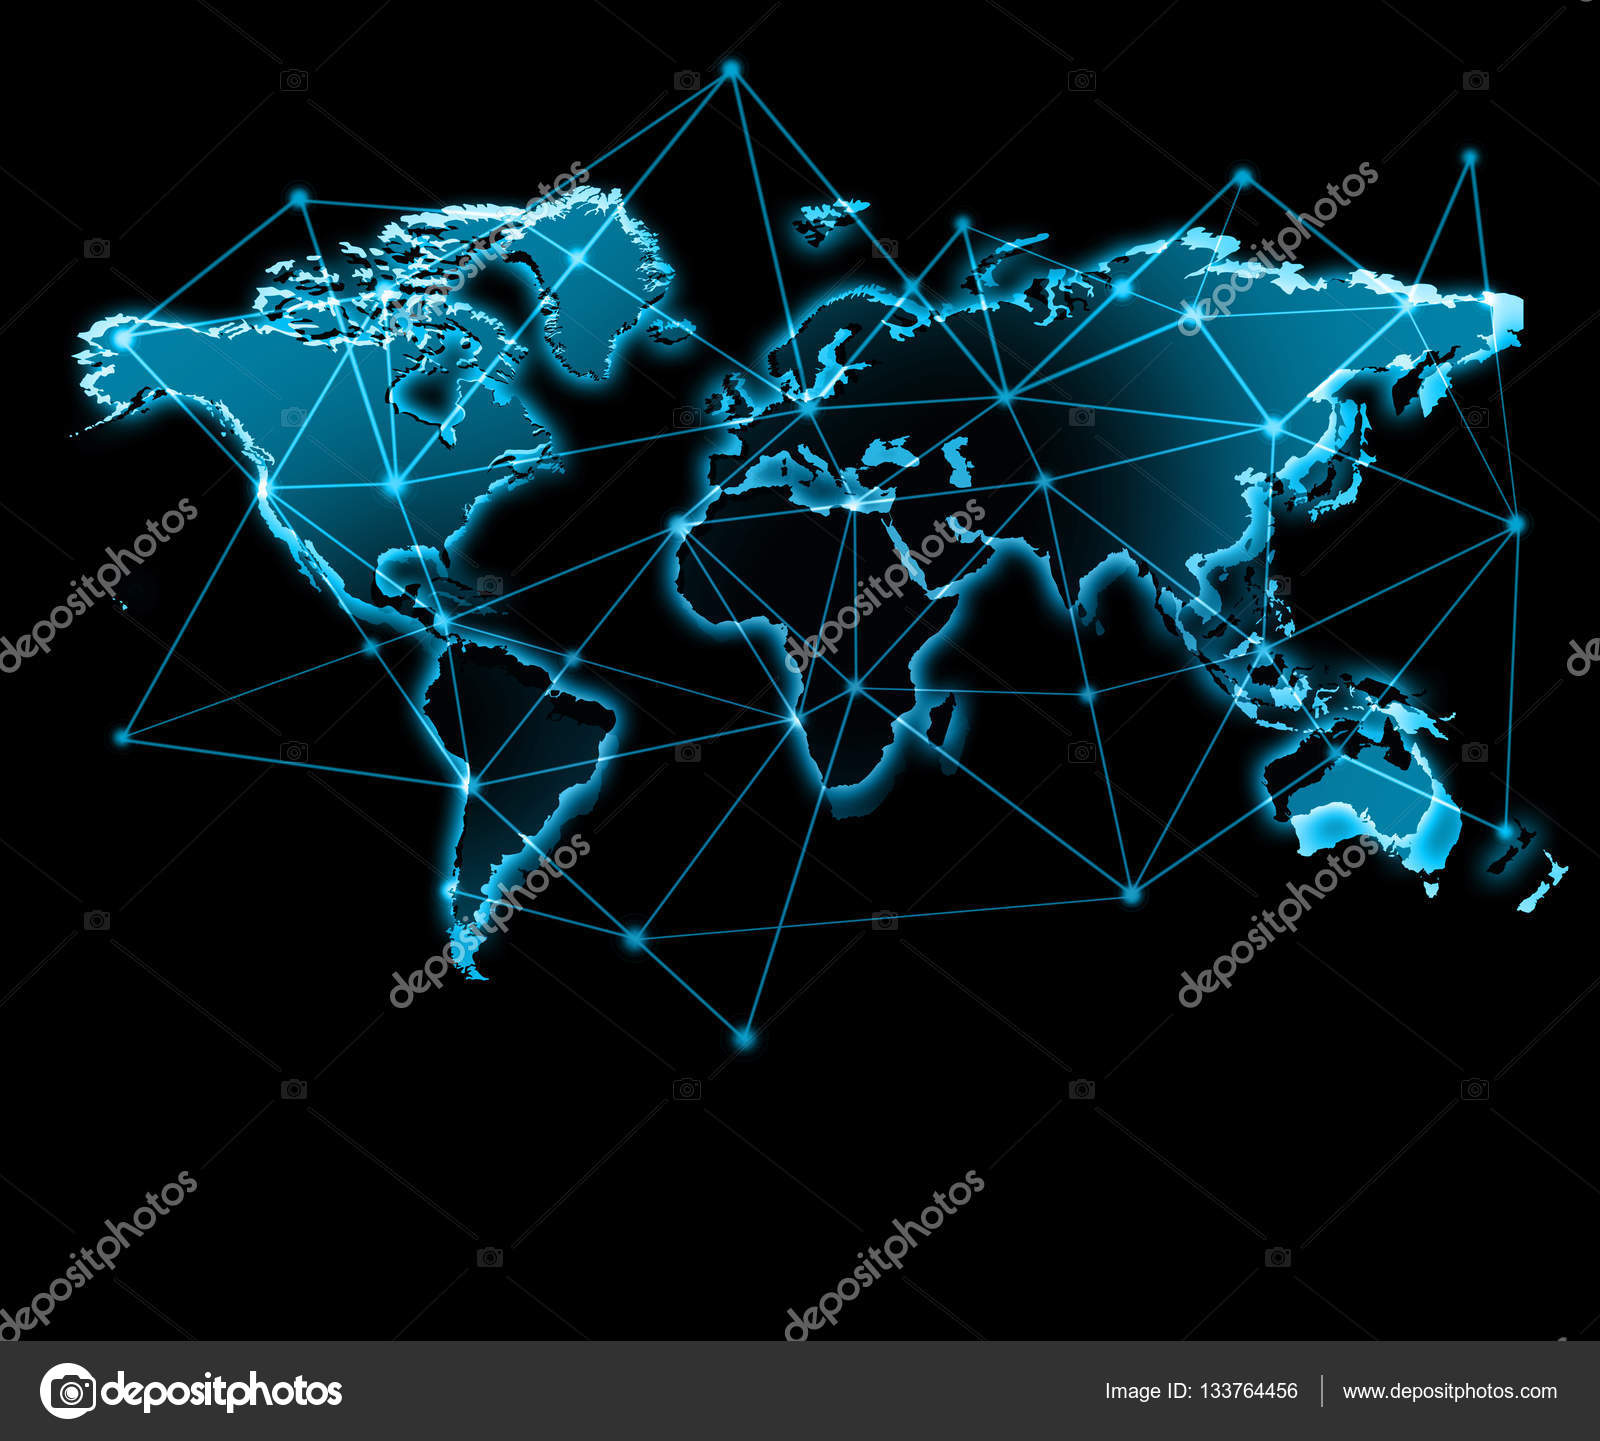 World map on a technological background glowing lines symbols of world map on a technological background glowing lines symbols of the internet radio gumiabroncs Choice Image